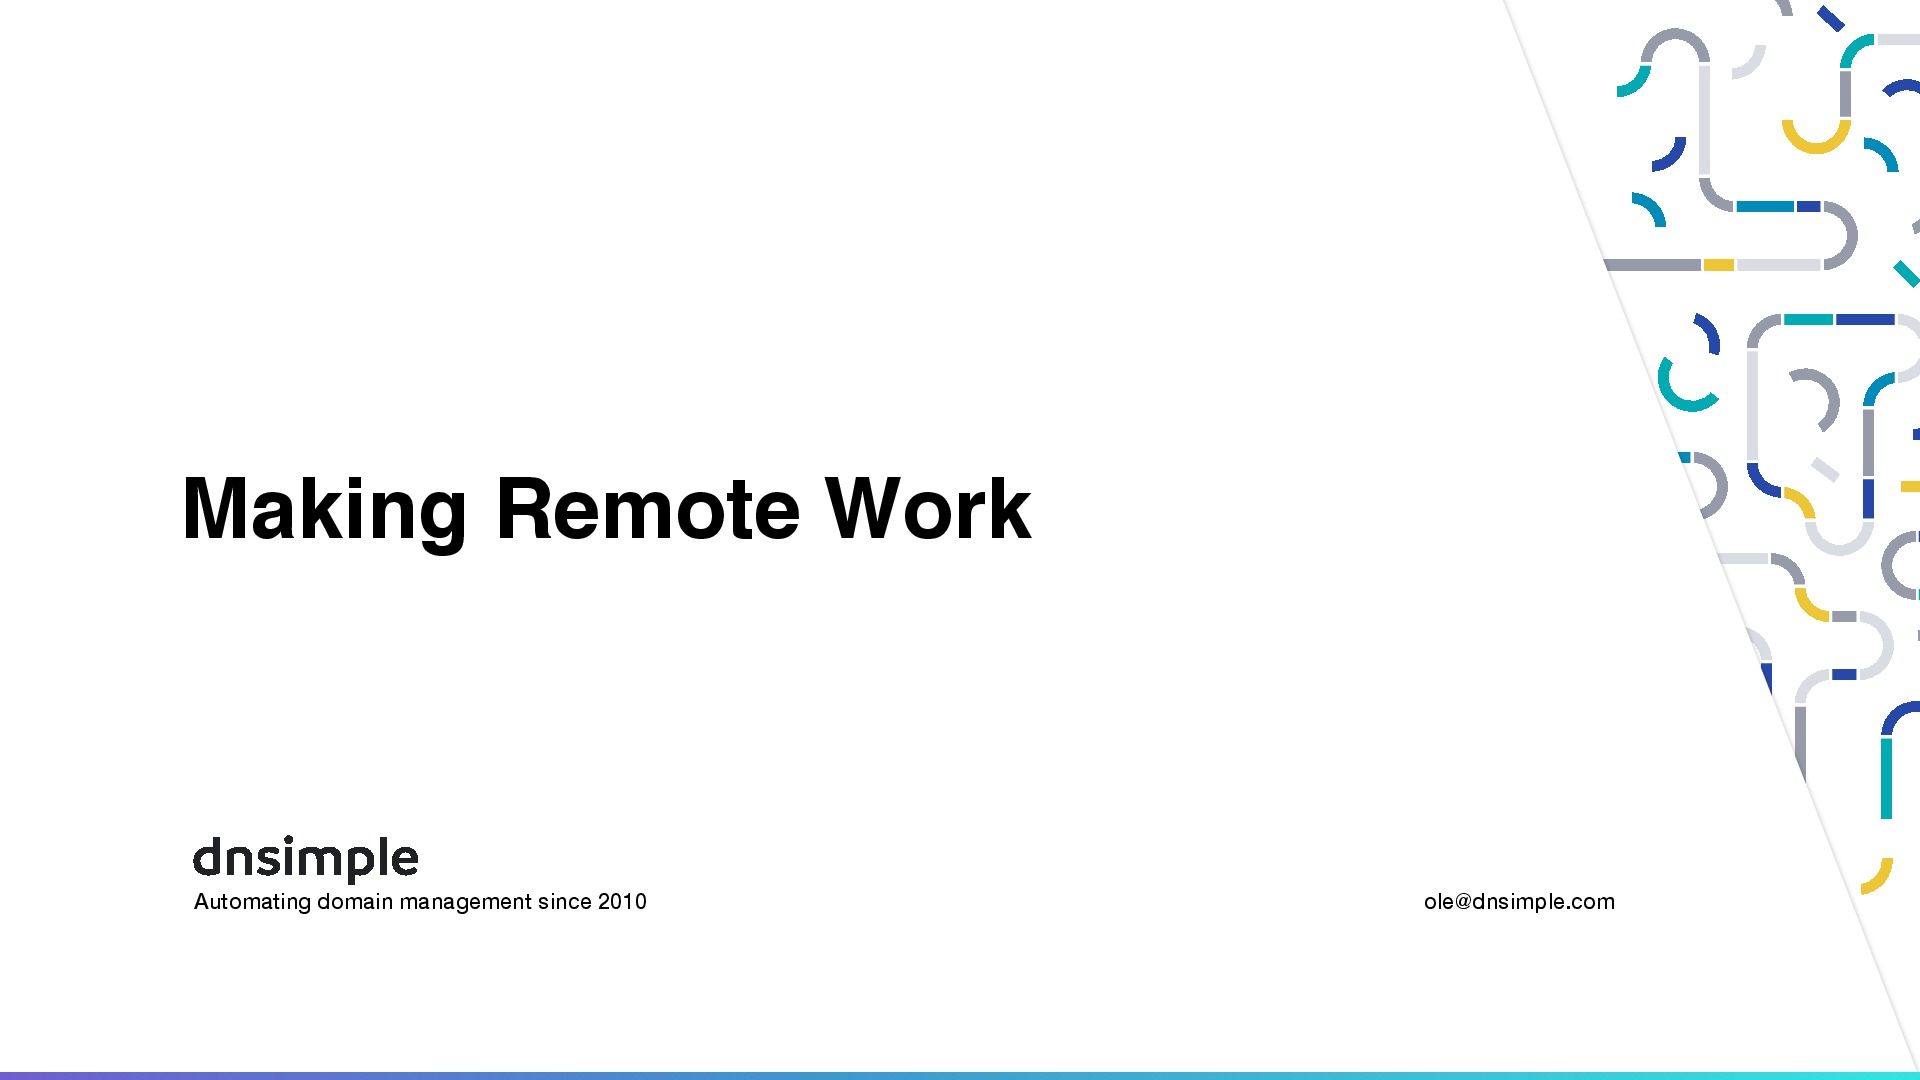 Making remote work